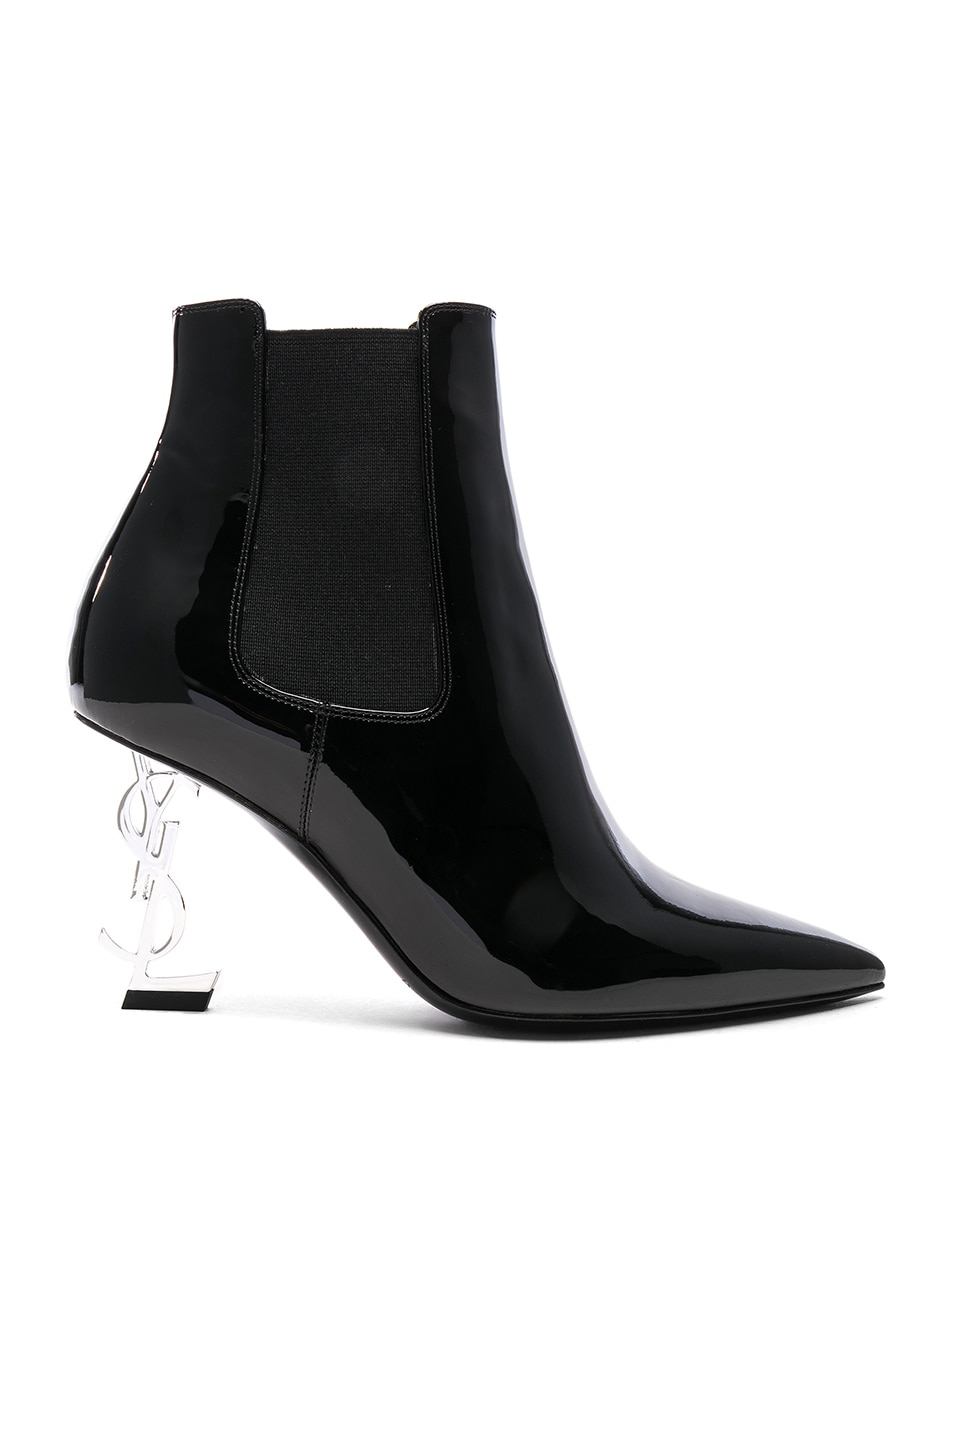 Image 1 of Saint Laurent Patent Opium Monogramme Heeled Boots in Black & Silver